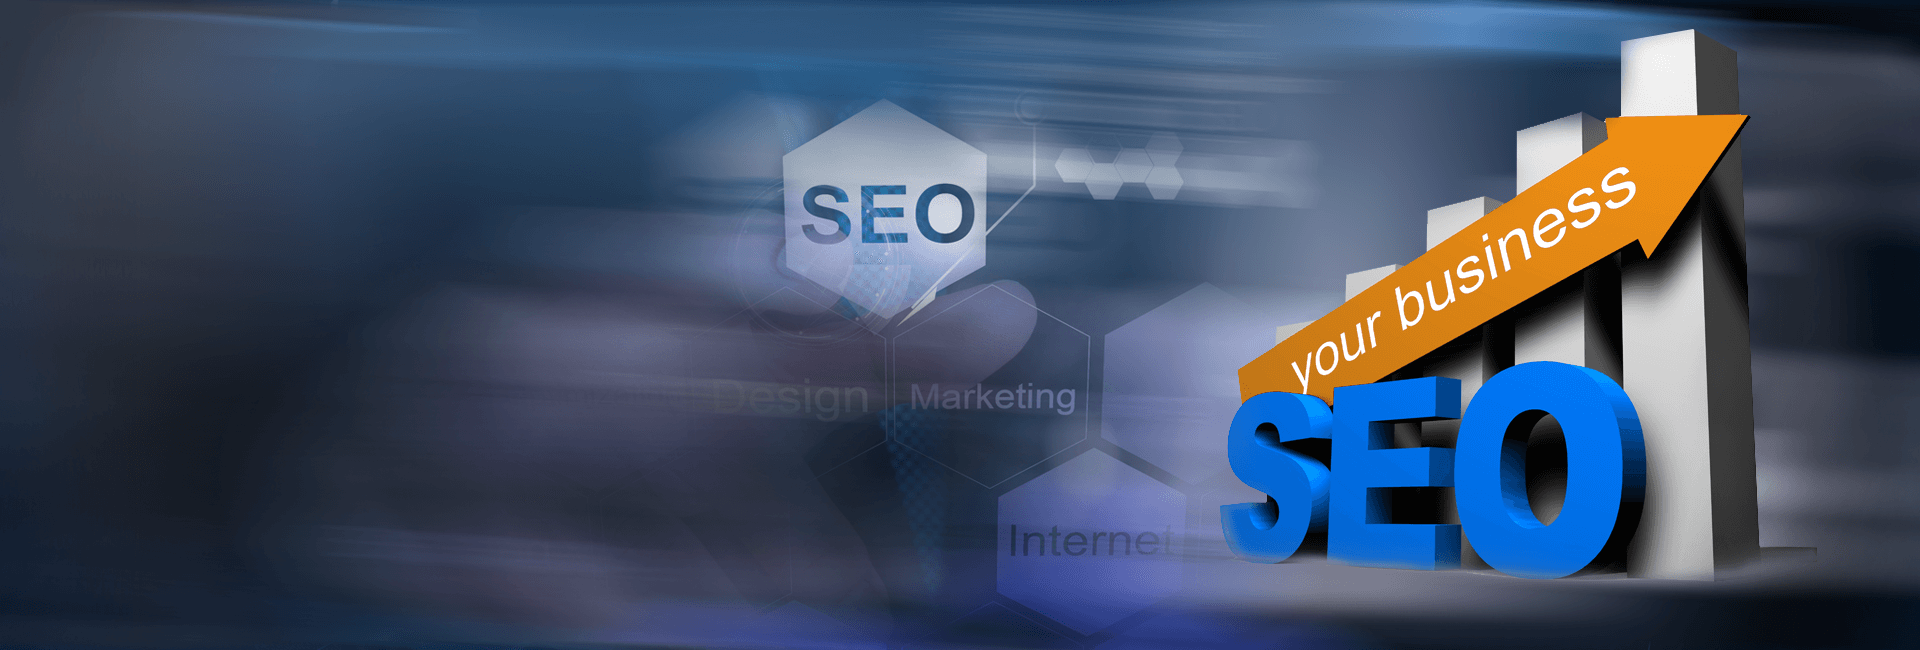 Your Business SEO